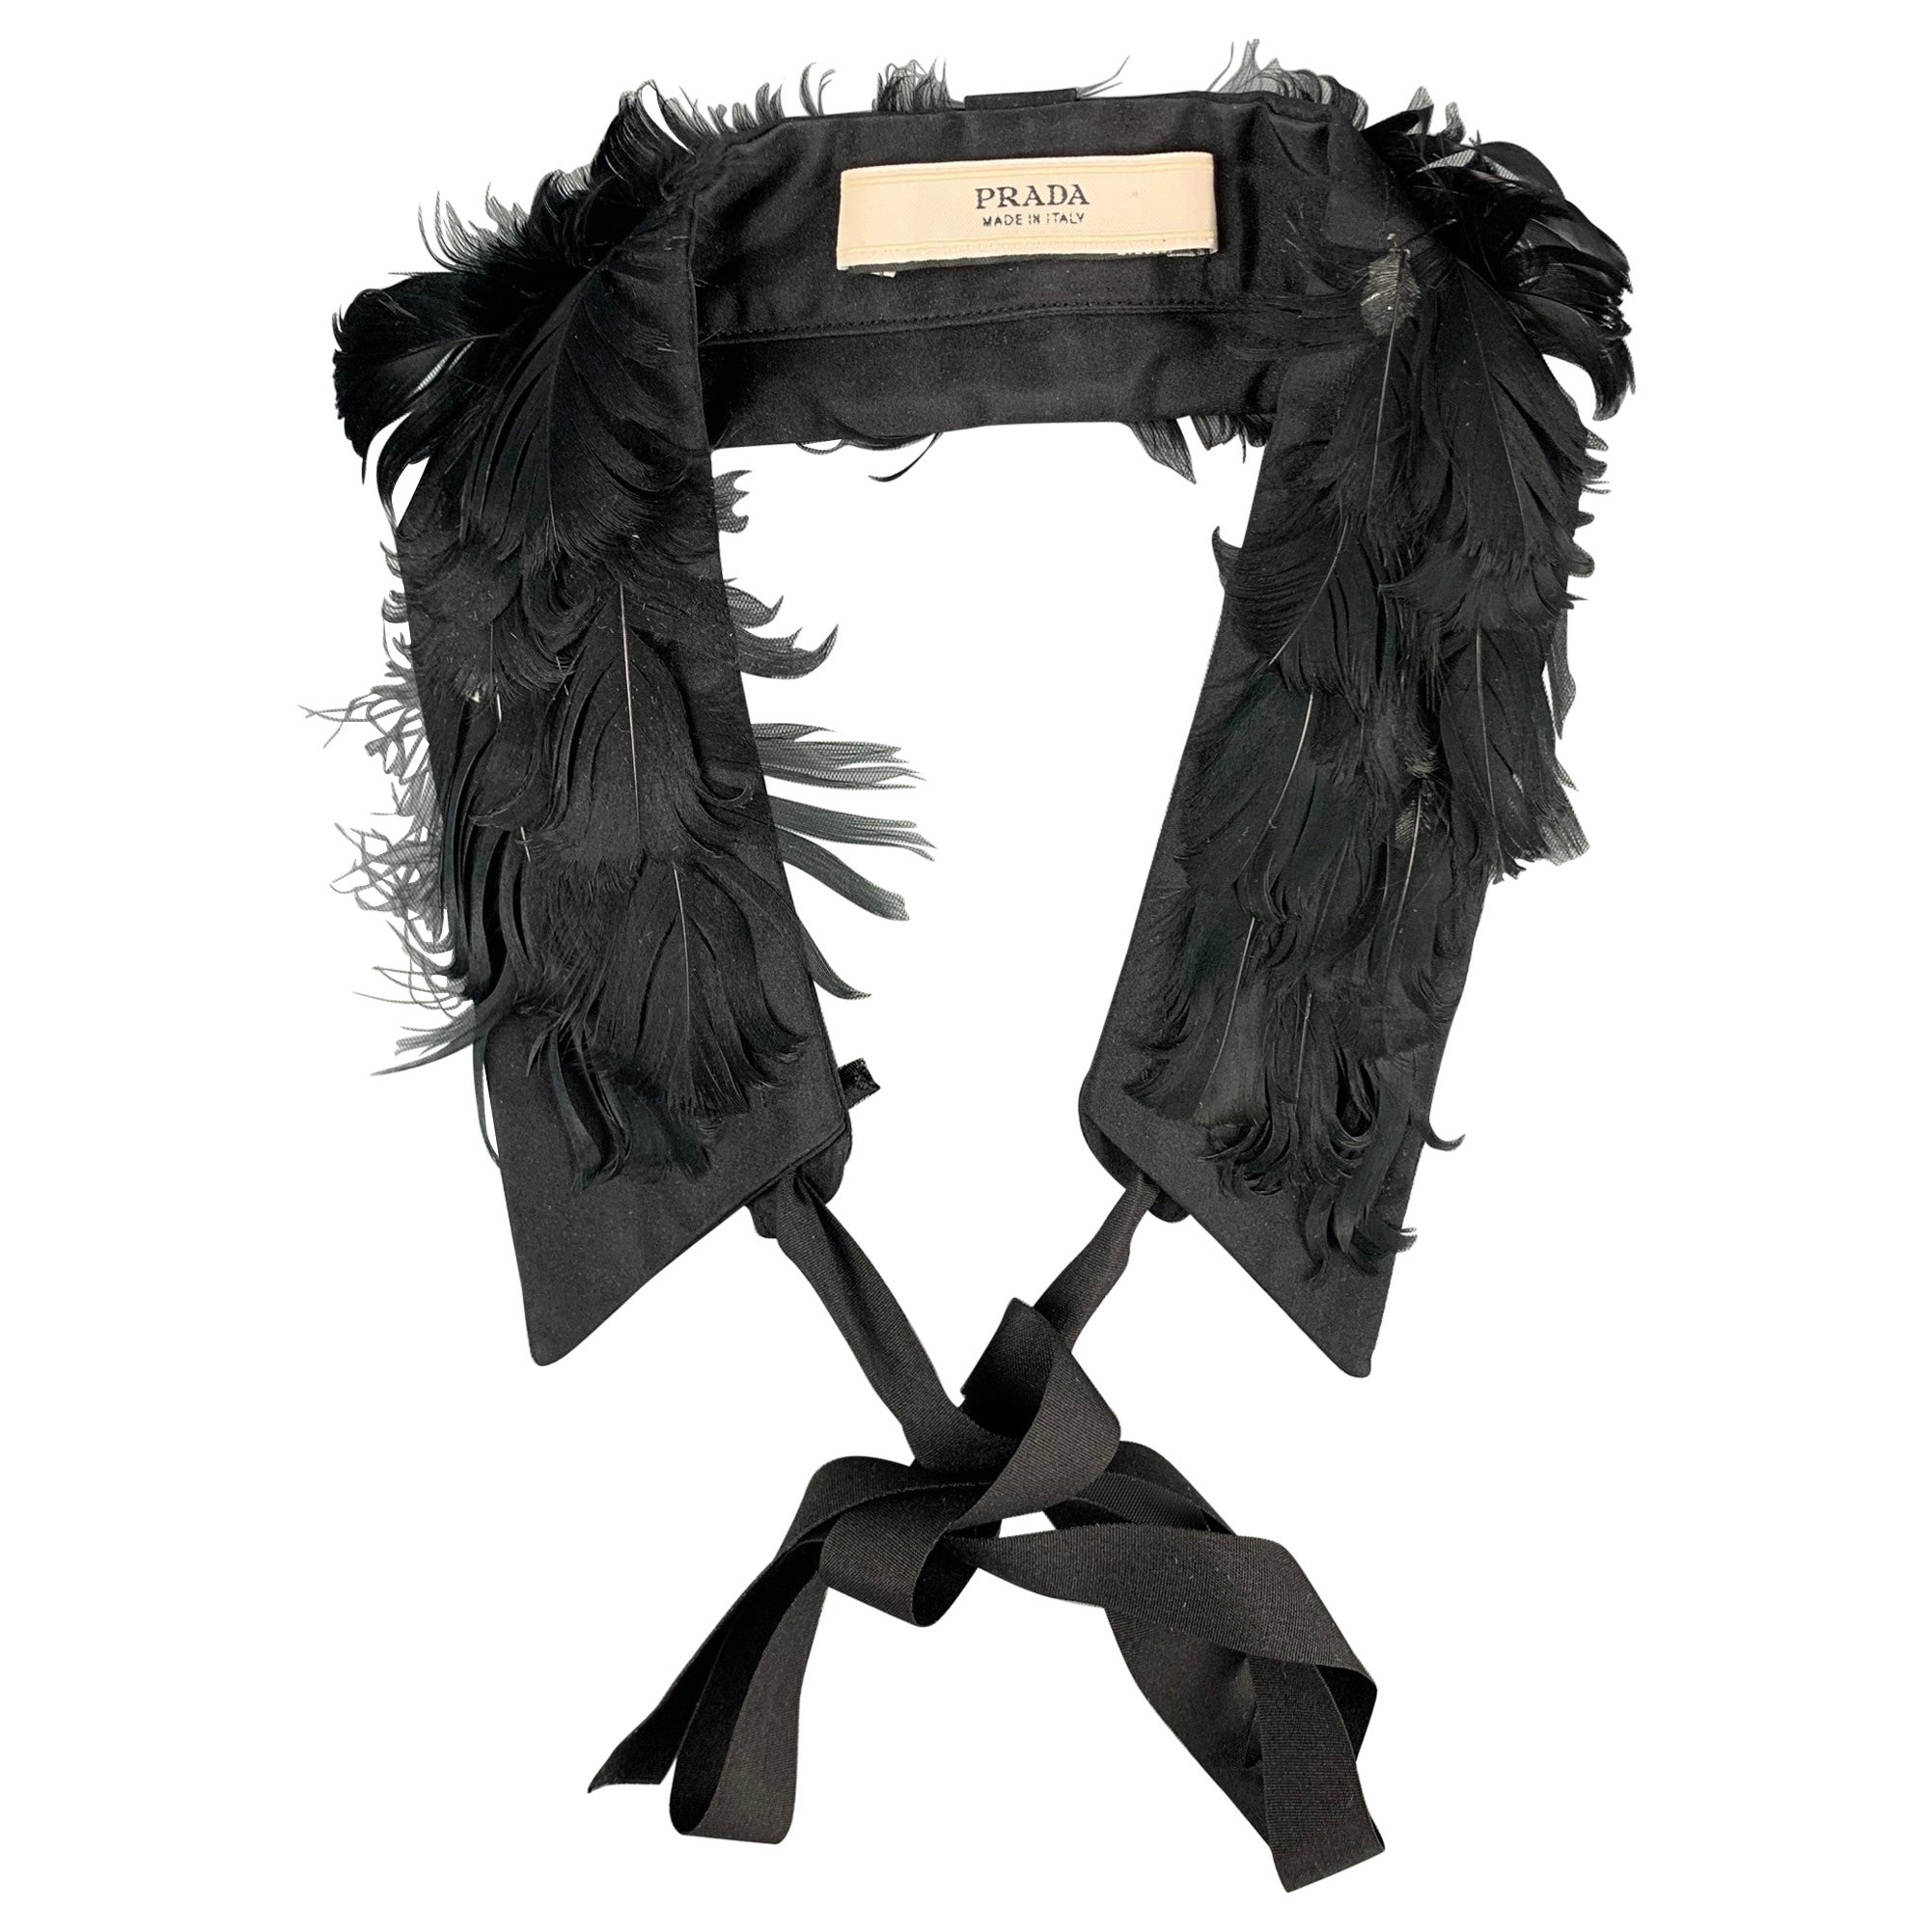 PRADA Black Fabric Feathers Tie Up Collar